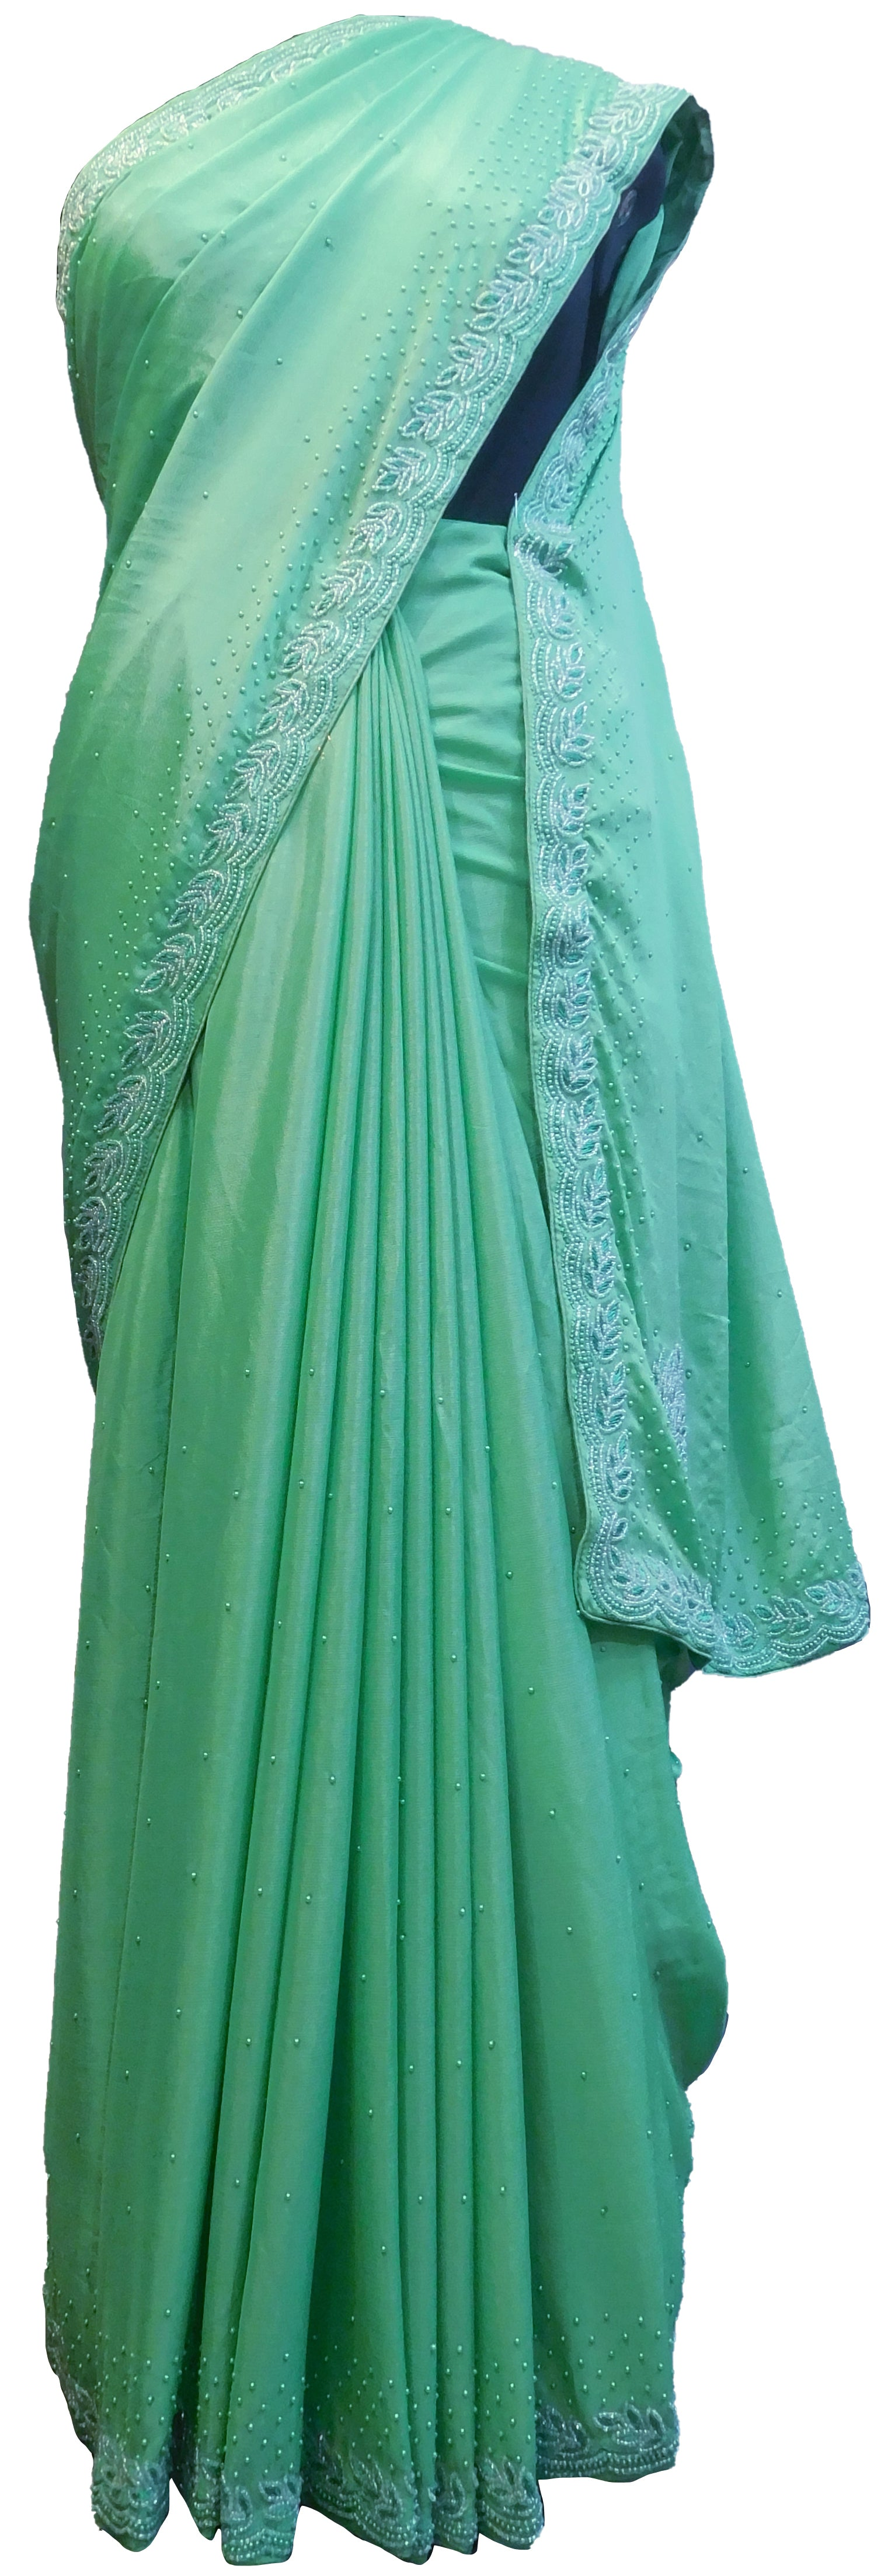 SMSAREE Green Designer Wedding Partywear Crepe (Chinon) Thread Beads & Pearl Hand Embroidery Work Bridal Saree Sari With Blouse Piece E513